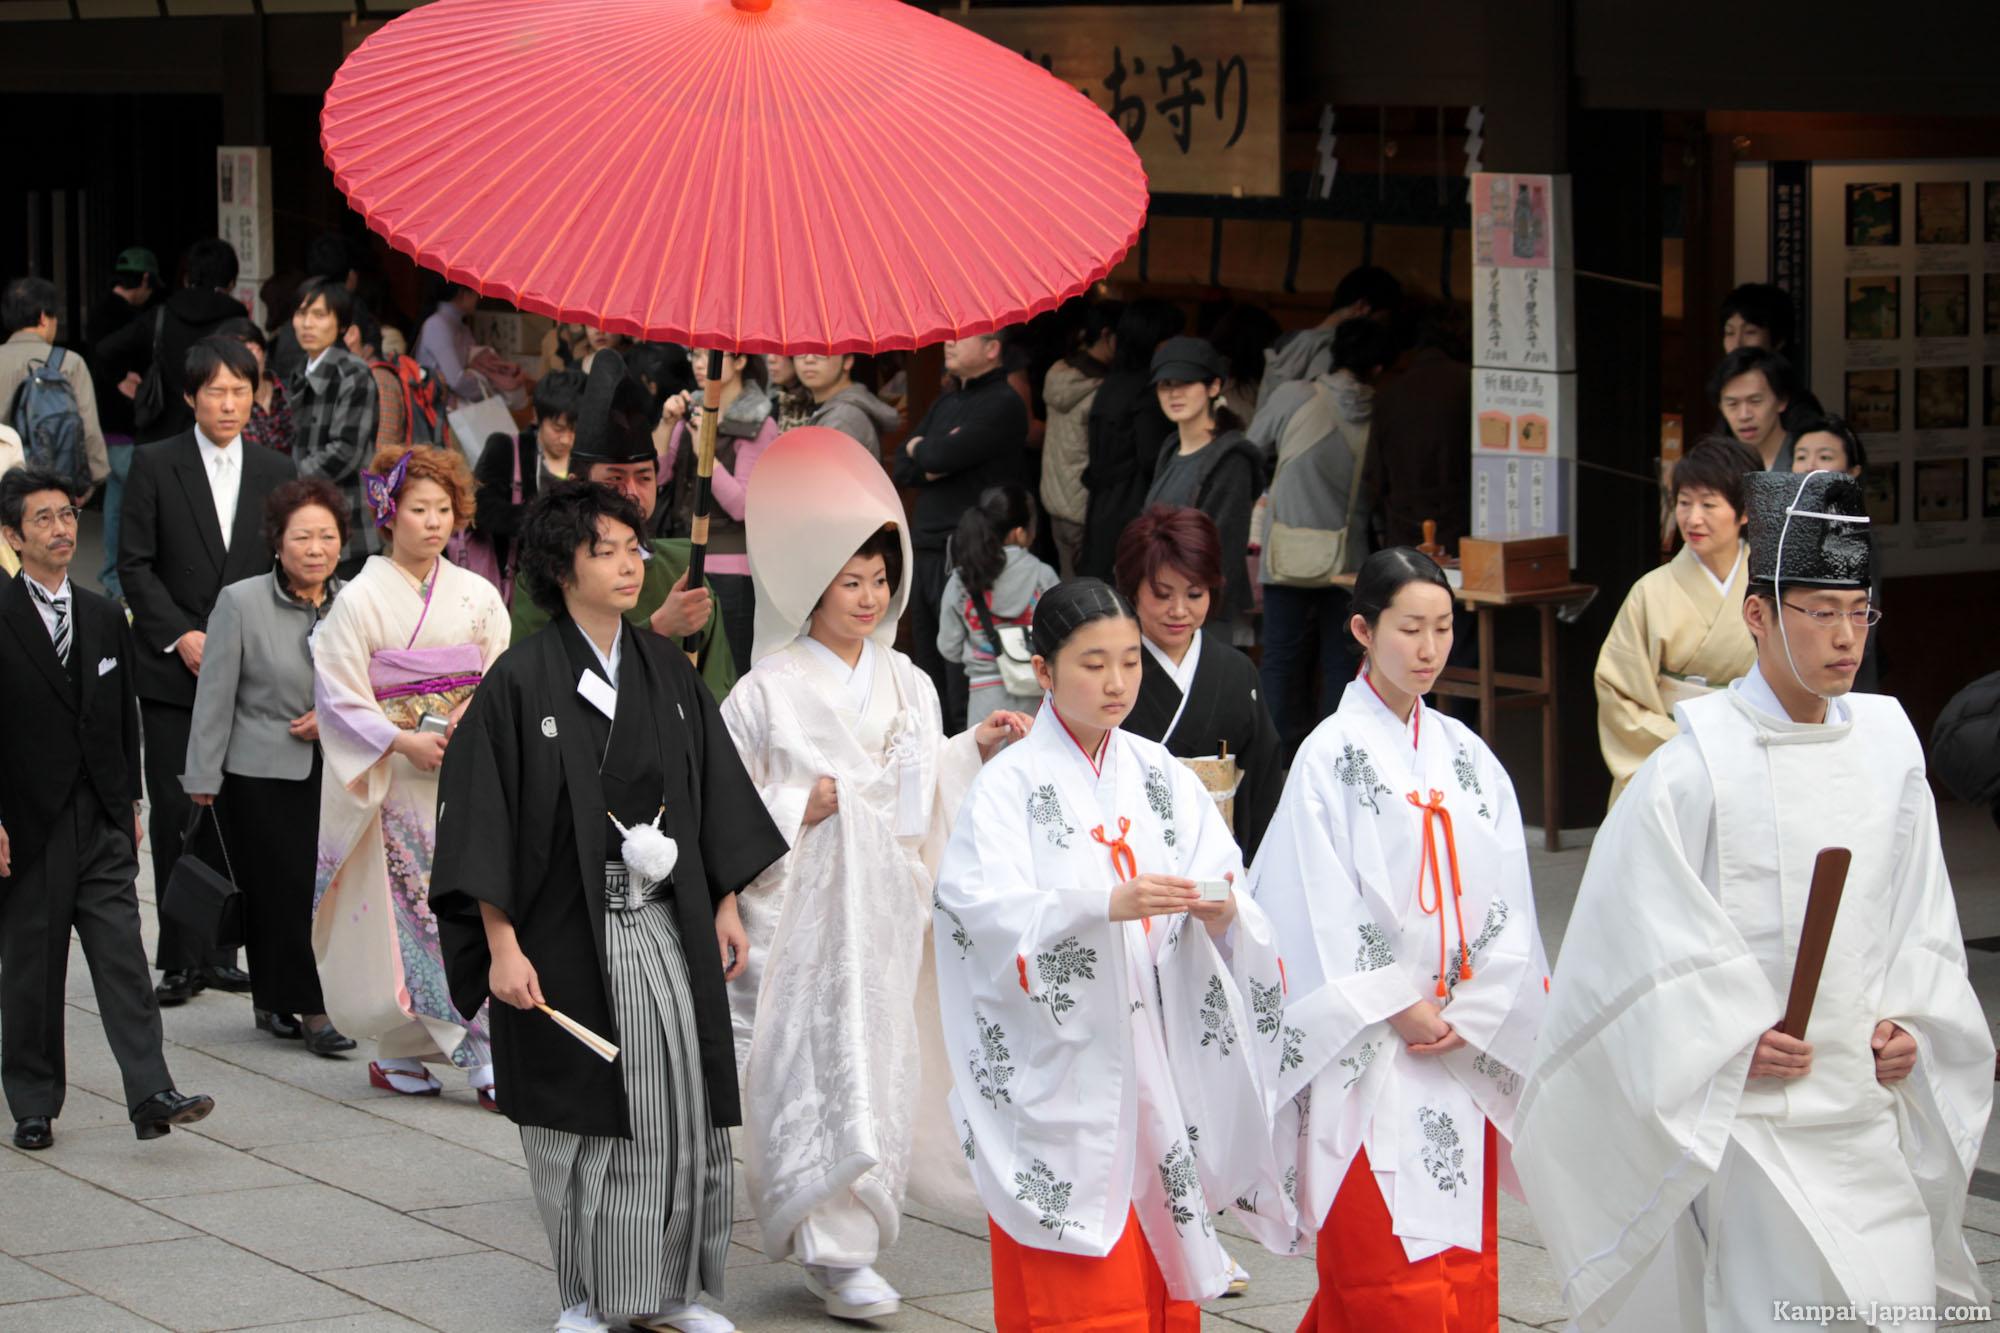 Japanese dating and marriage traditions